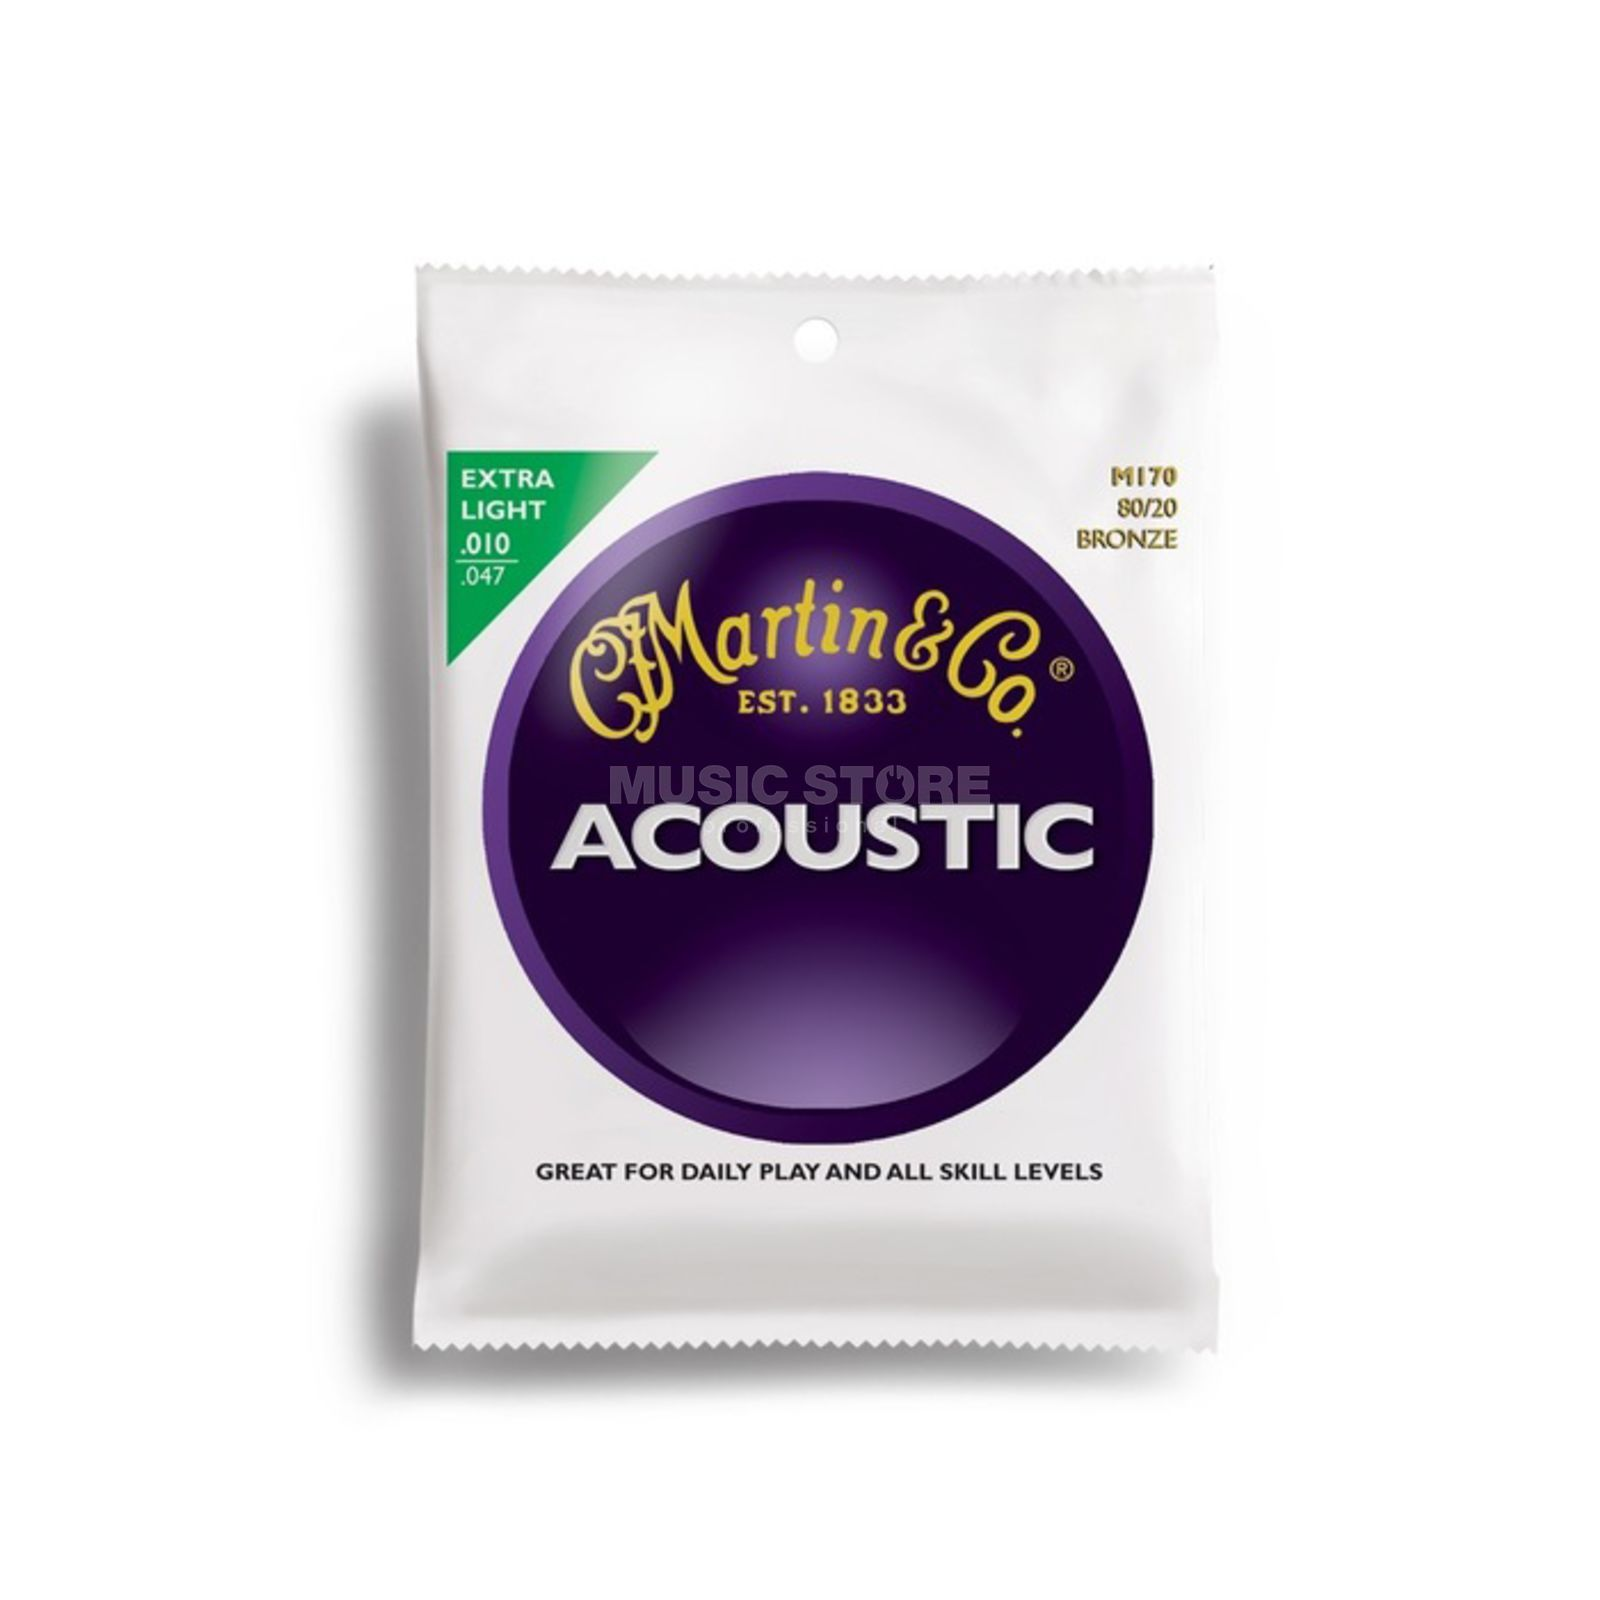 Martin Guitars A-Guitar Strings 10-47 M170 Bronze Product Image